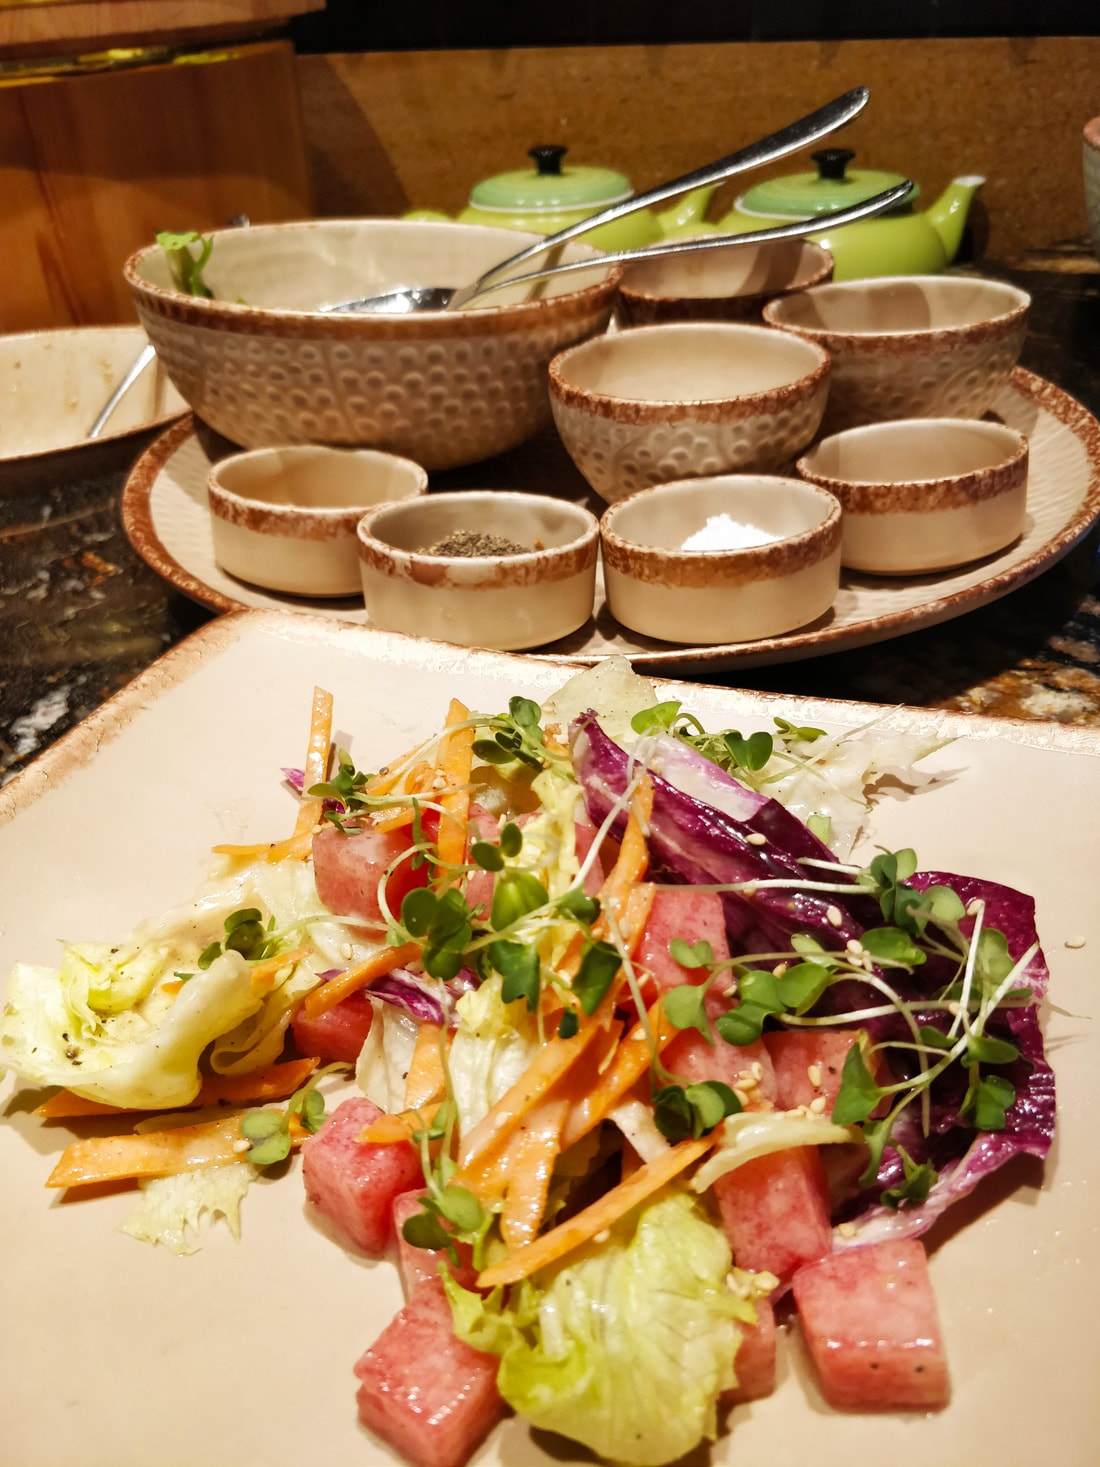 Fresh salad topped with sesame dressing